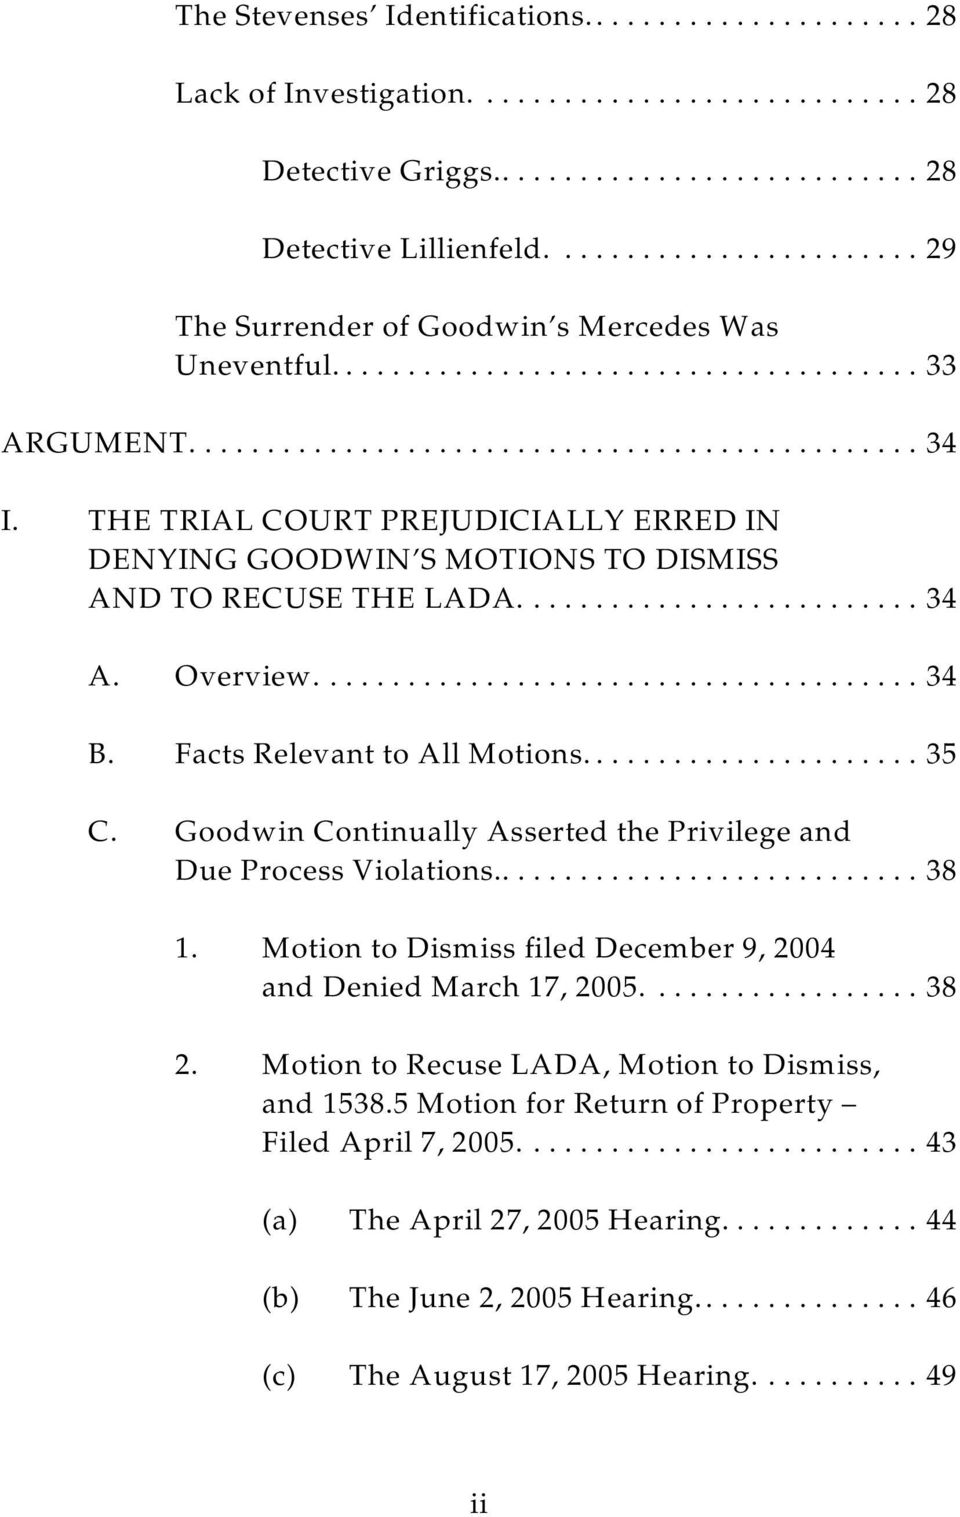 Goodwin Continually Asserted the Privilege and Due Process Violations...3 8 1. Motion to Dismiss filed December 9, 2004 and Denied March 17, 2005.................. 3 8 2.